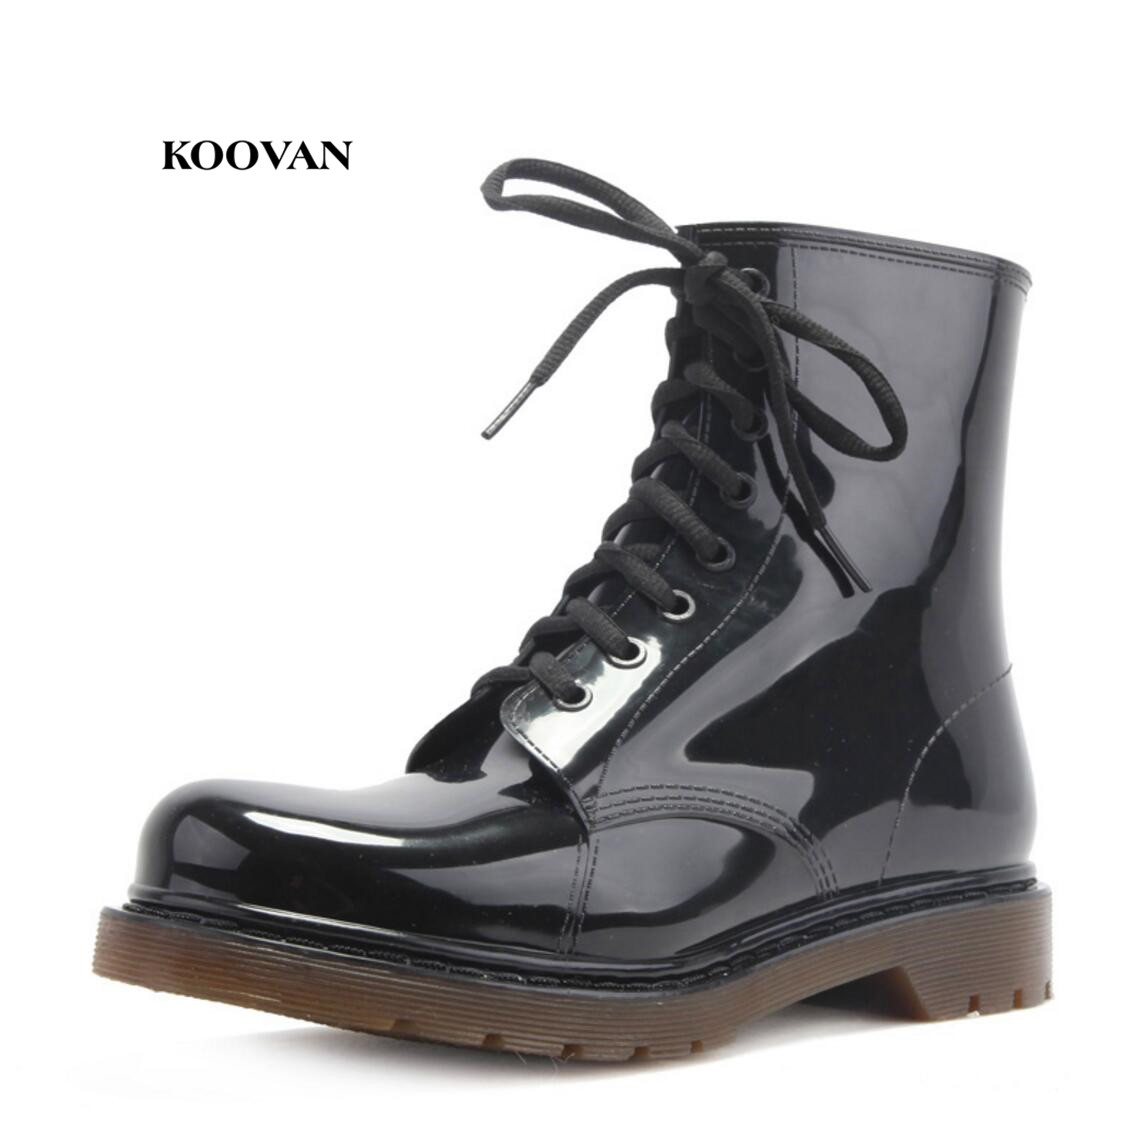 Koovan Man Rain Boots 2018 New Fashion Meeste kingad Rainboots Mehed Black Martin Saapad Rain Shoes Suured 39-45